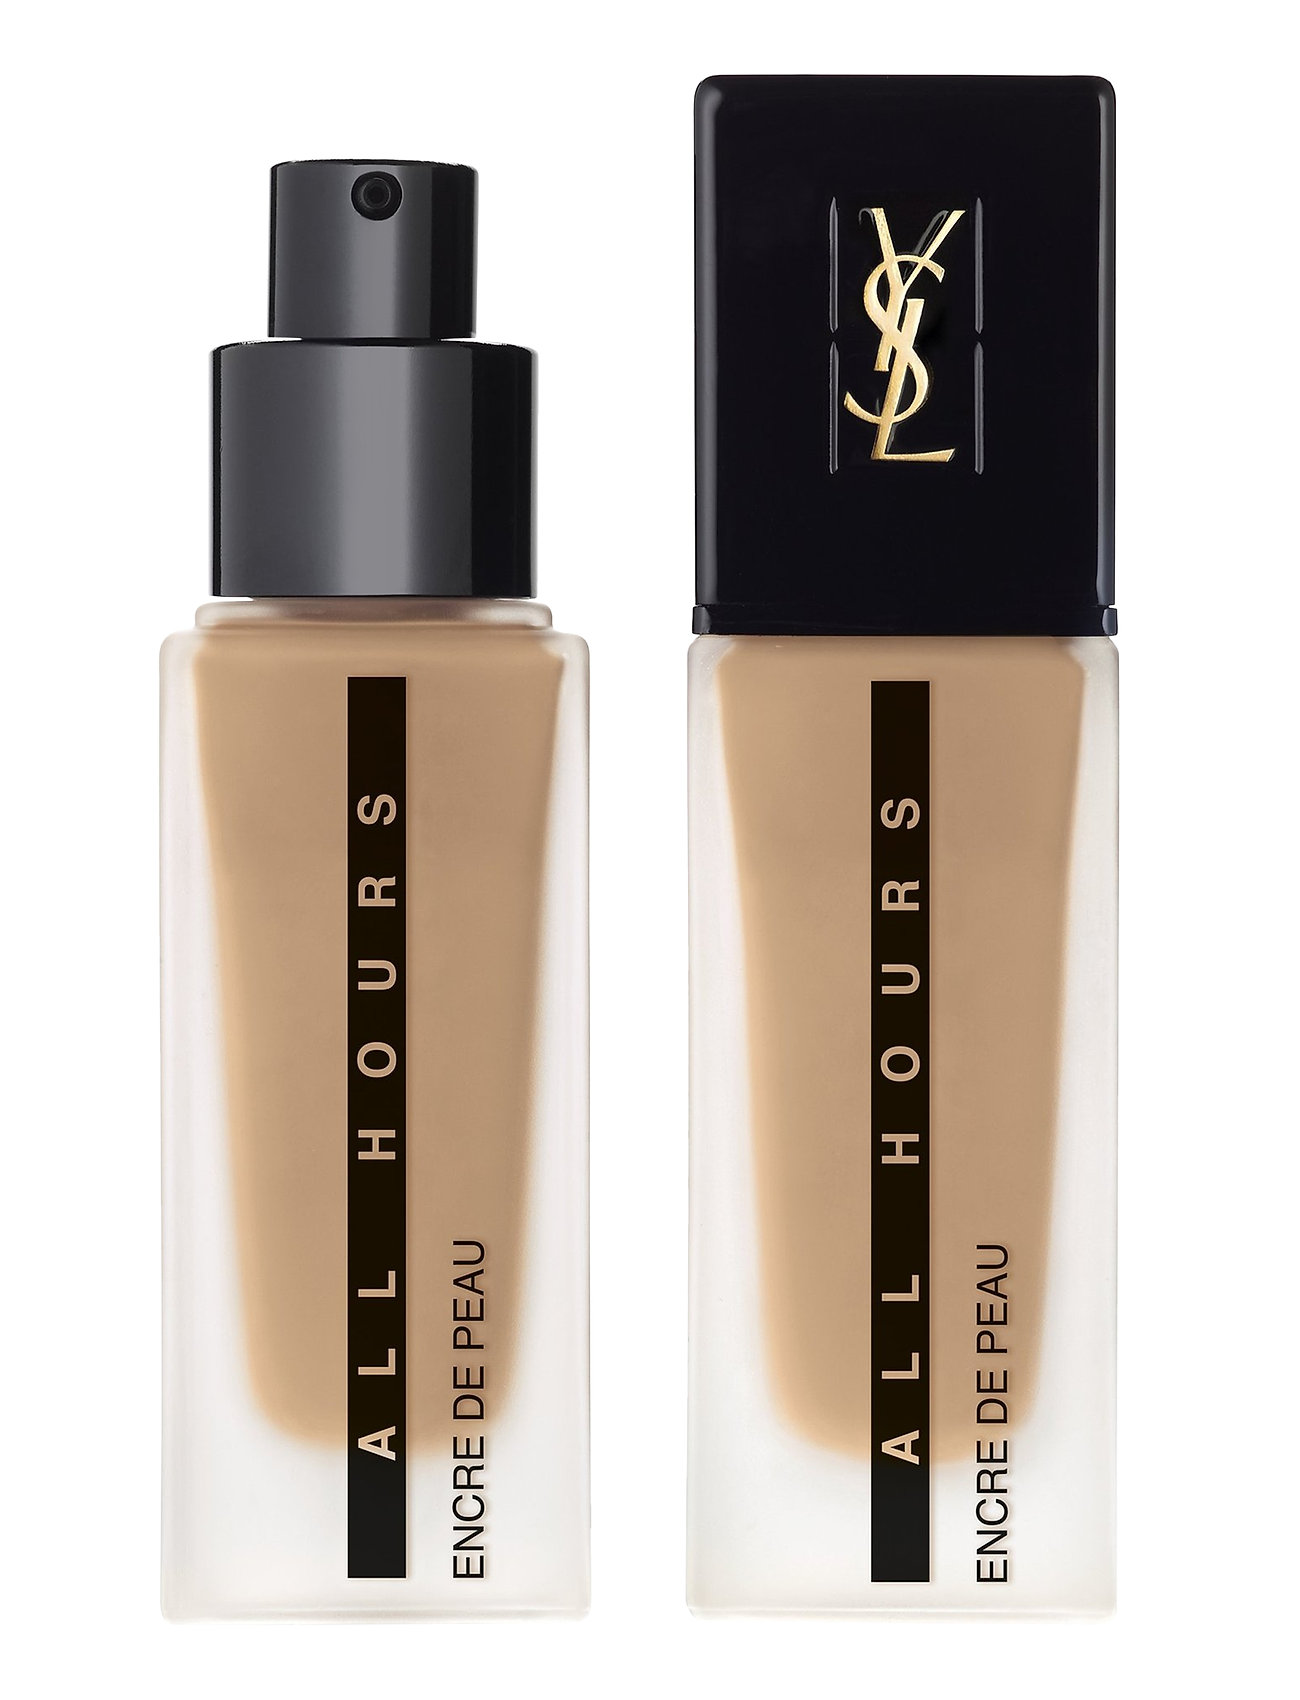 Encre de peau all hours b40 25 ml fra yves saint laurent på boozt.com dk